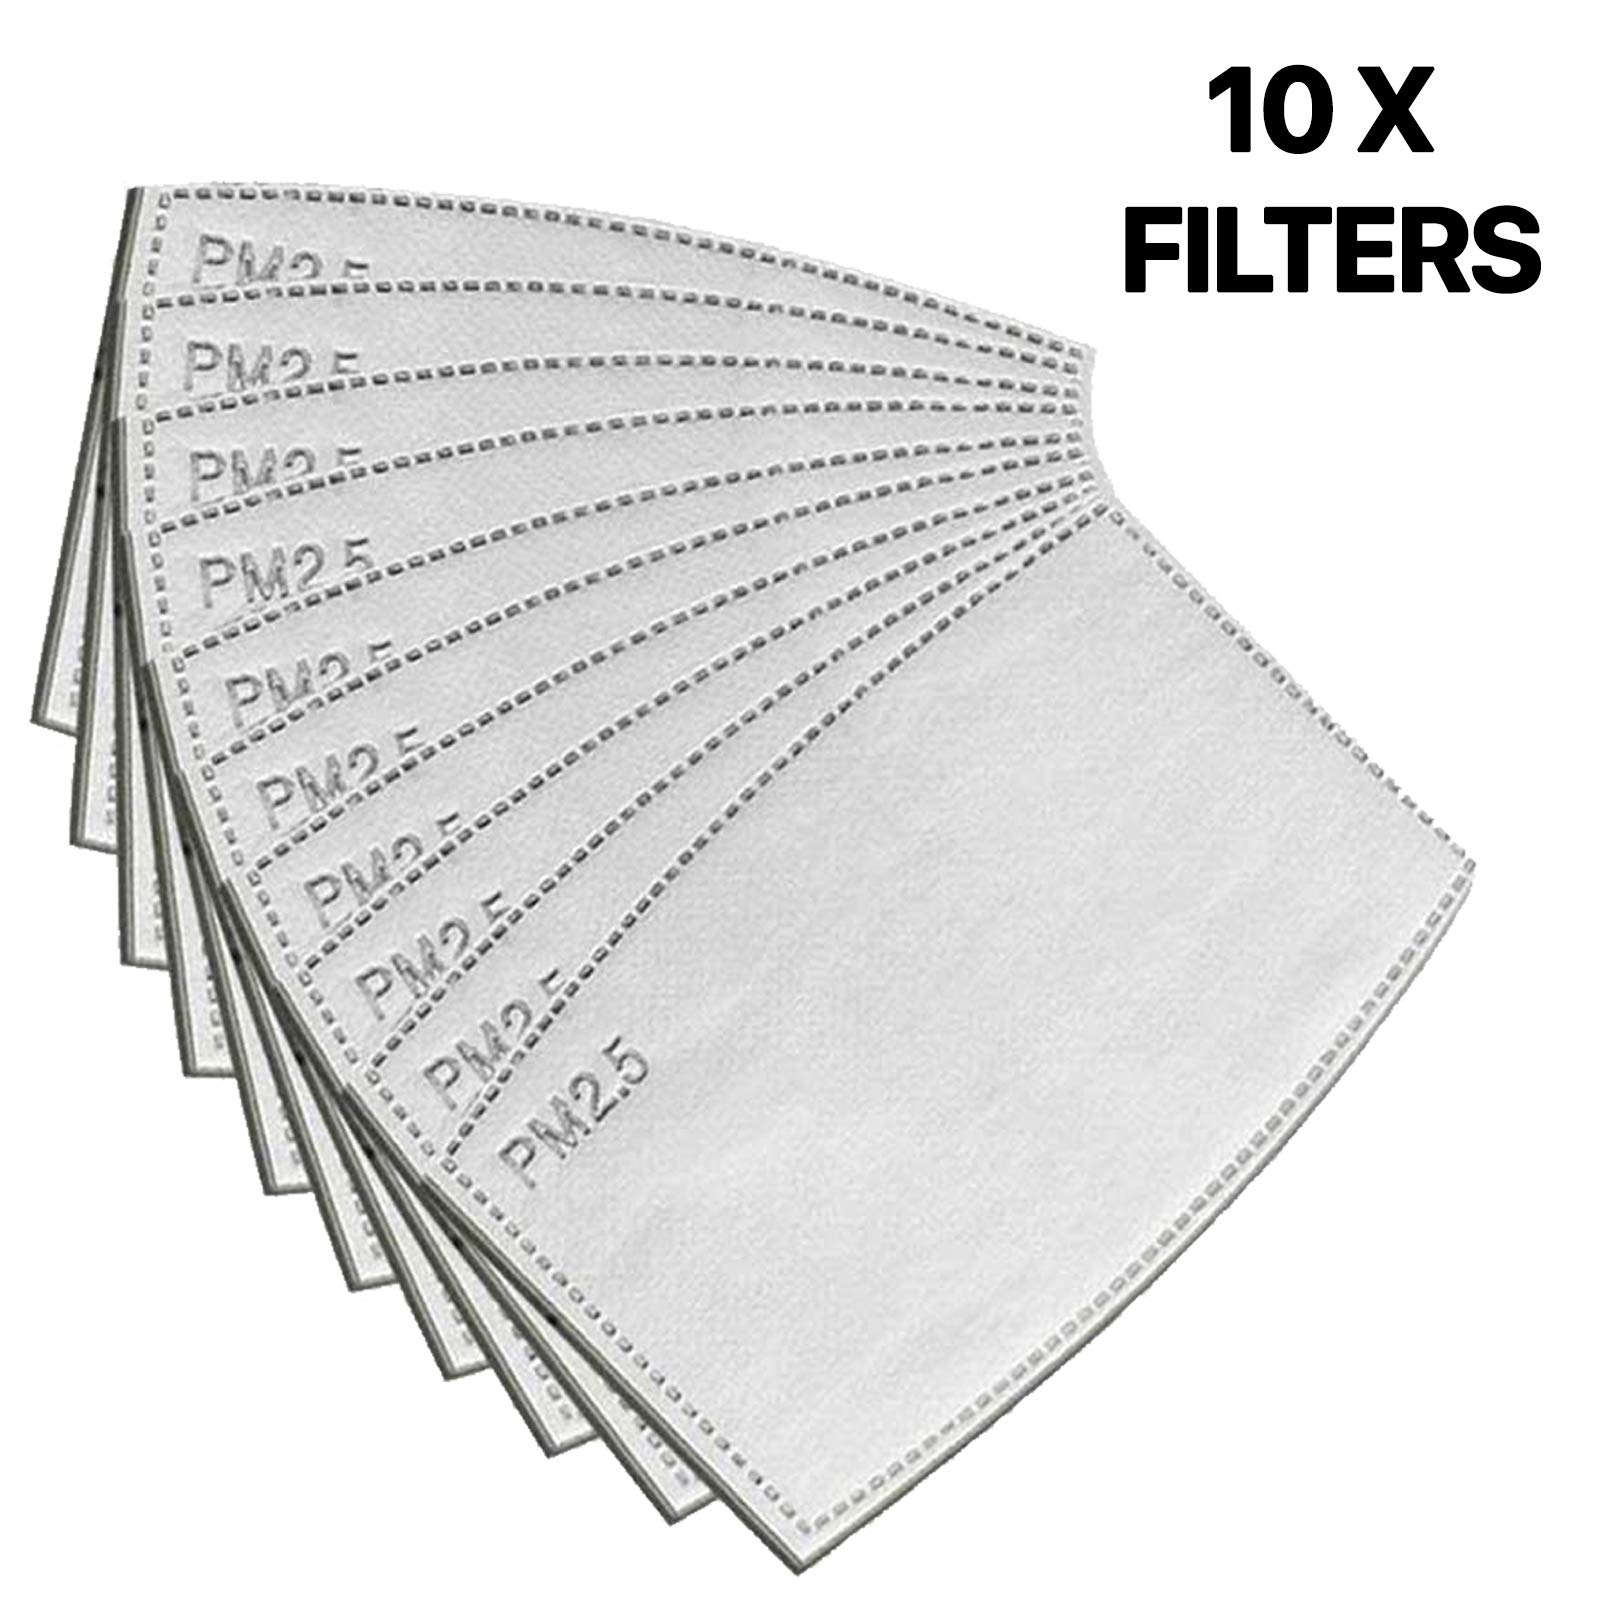 Tanness 10x Mask Filter Replacement, Protective Filter, PM2.5 Protective Filter 5 Layers Replaceable Anti Haze Filters…